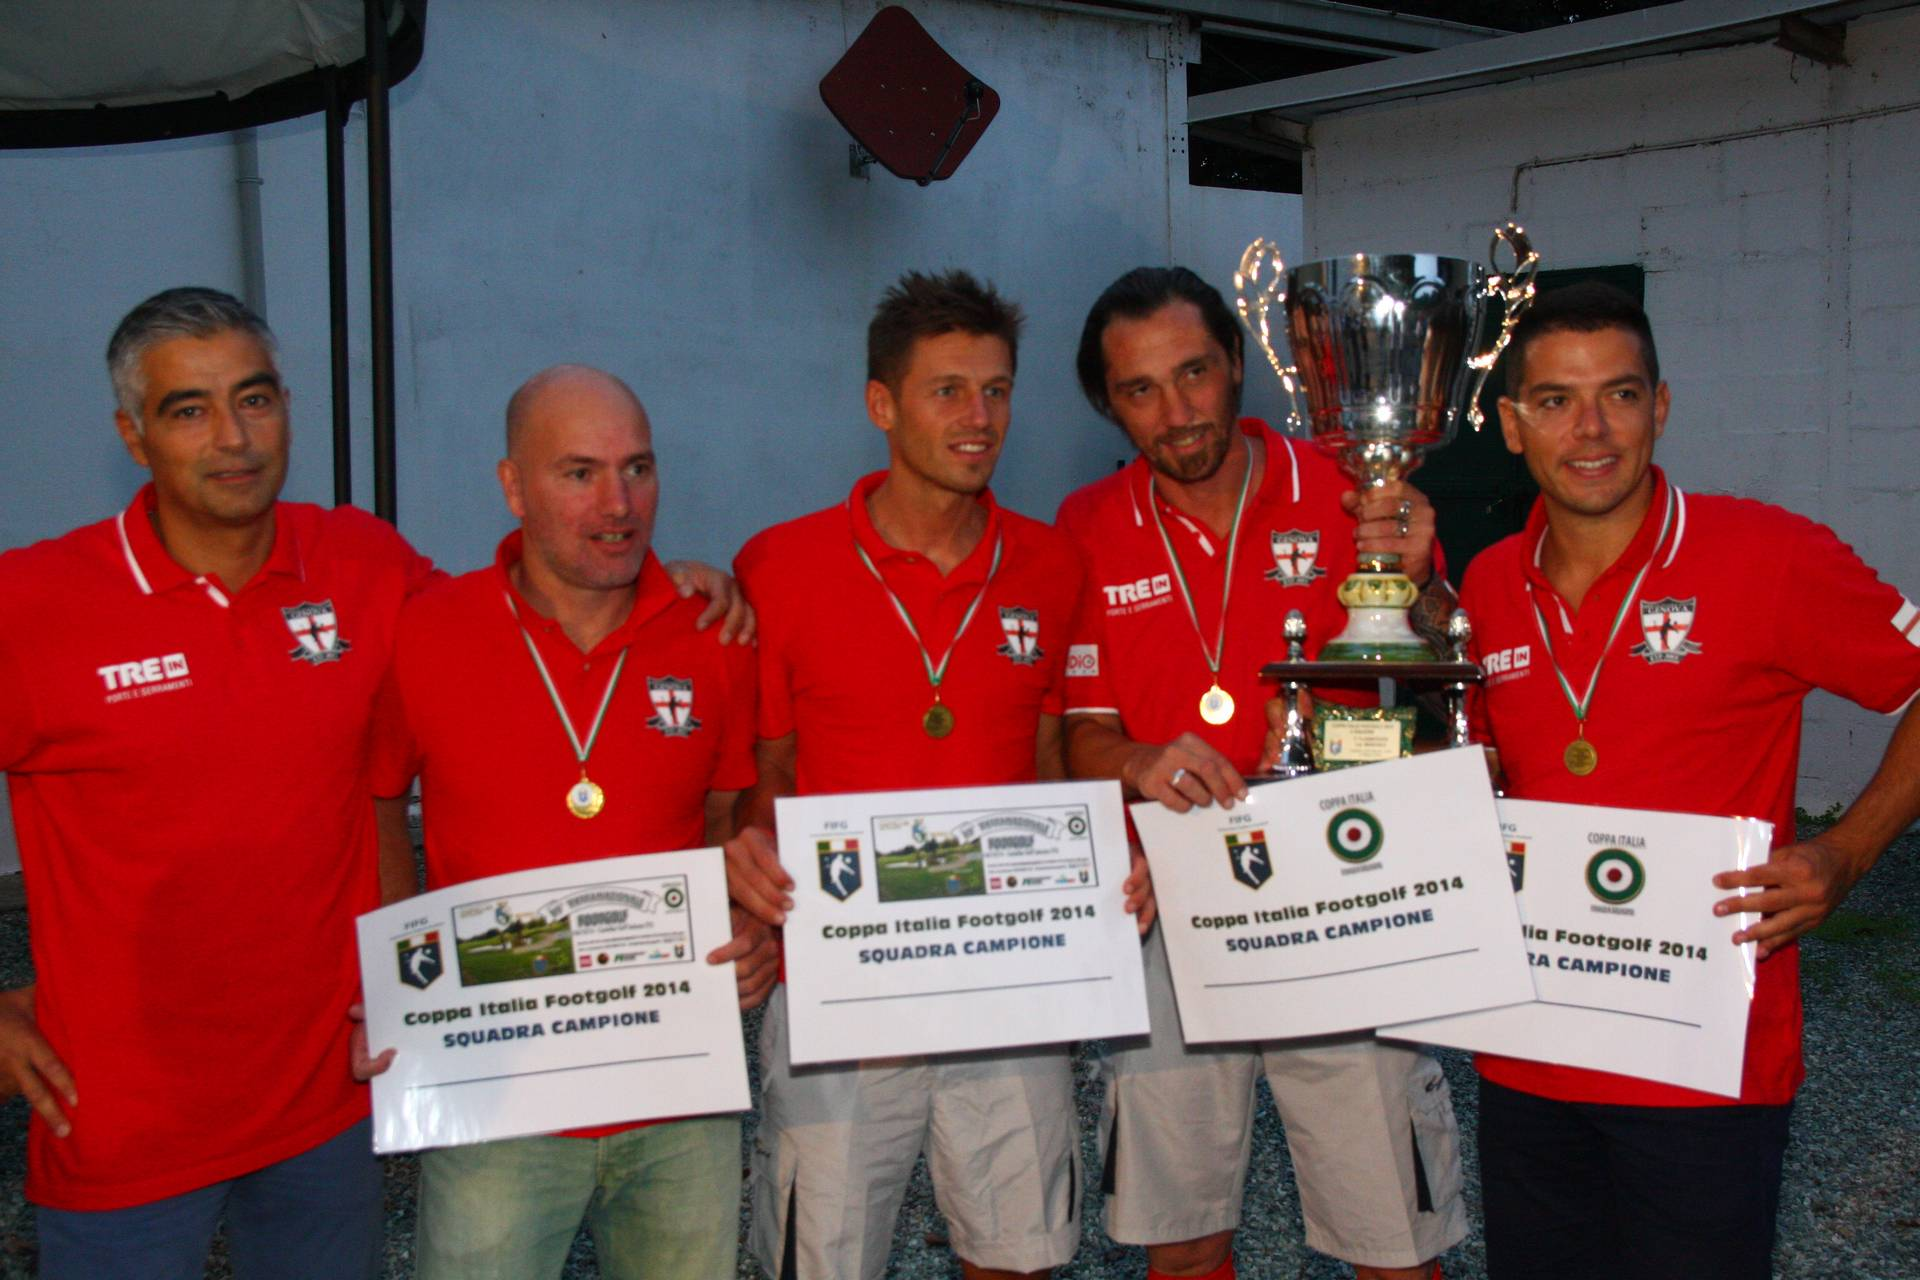 Coppa Italia Footgolf 2014 a Squadre